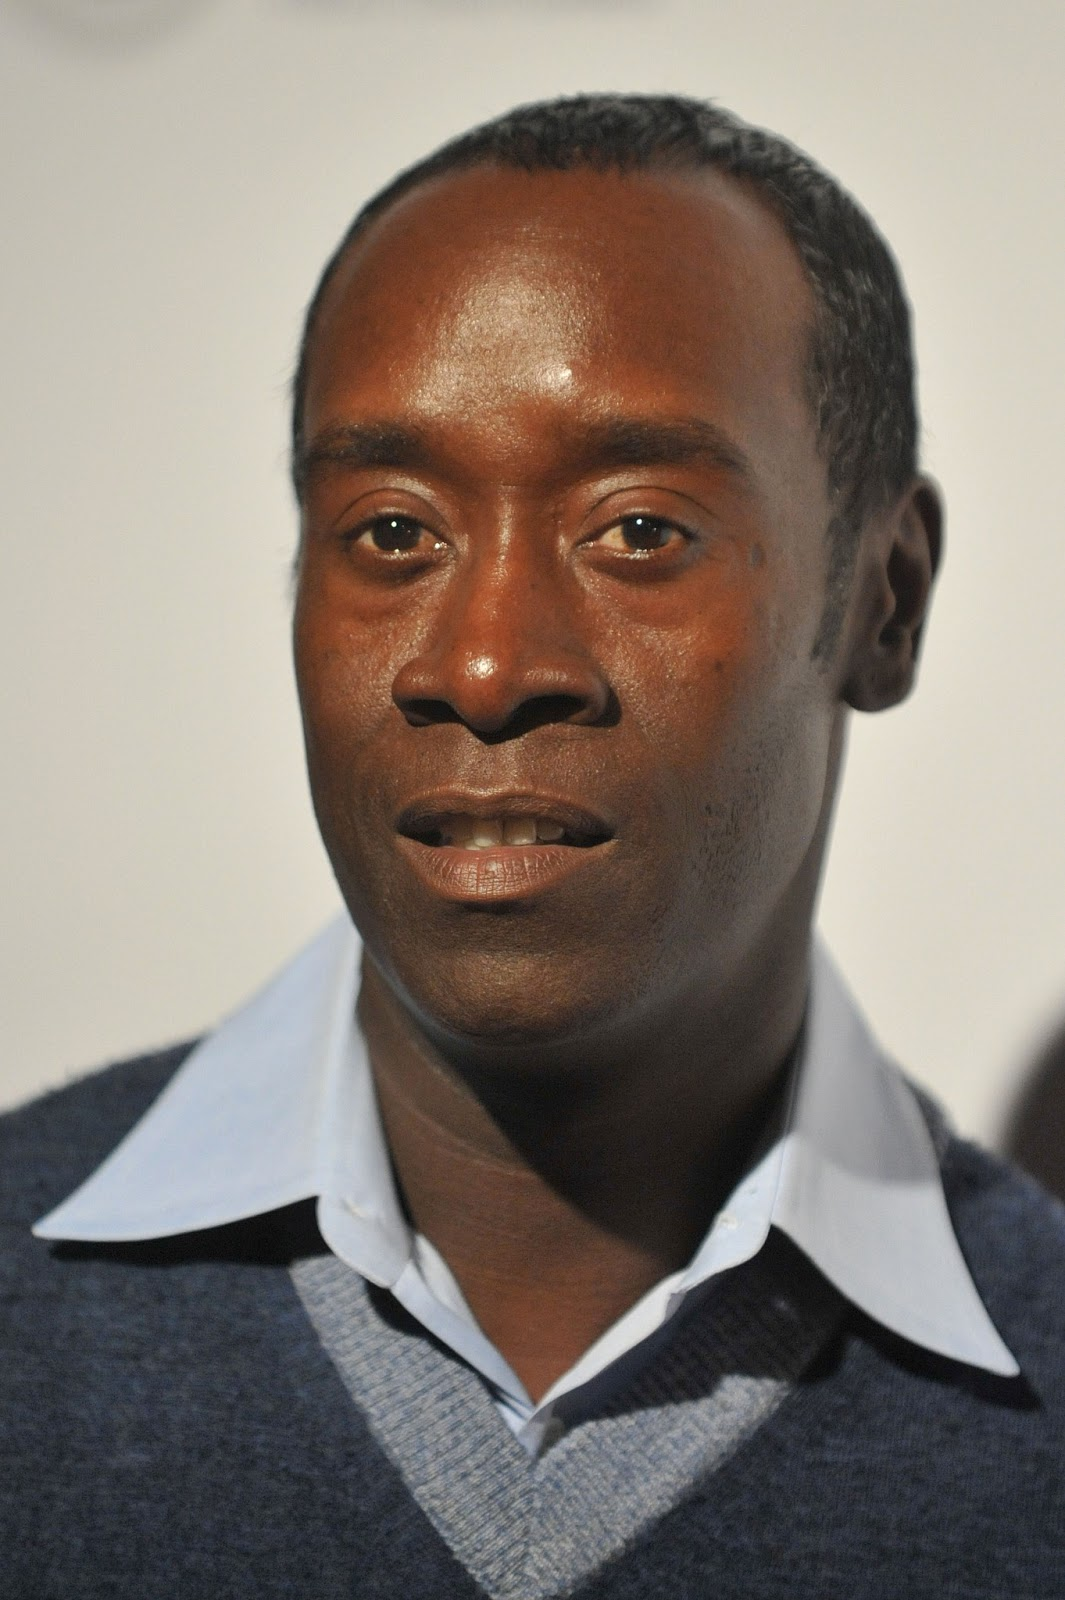 Don Cheadle Hairstyle Men Hairstyles Men Hair Styles